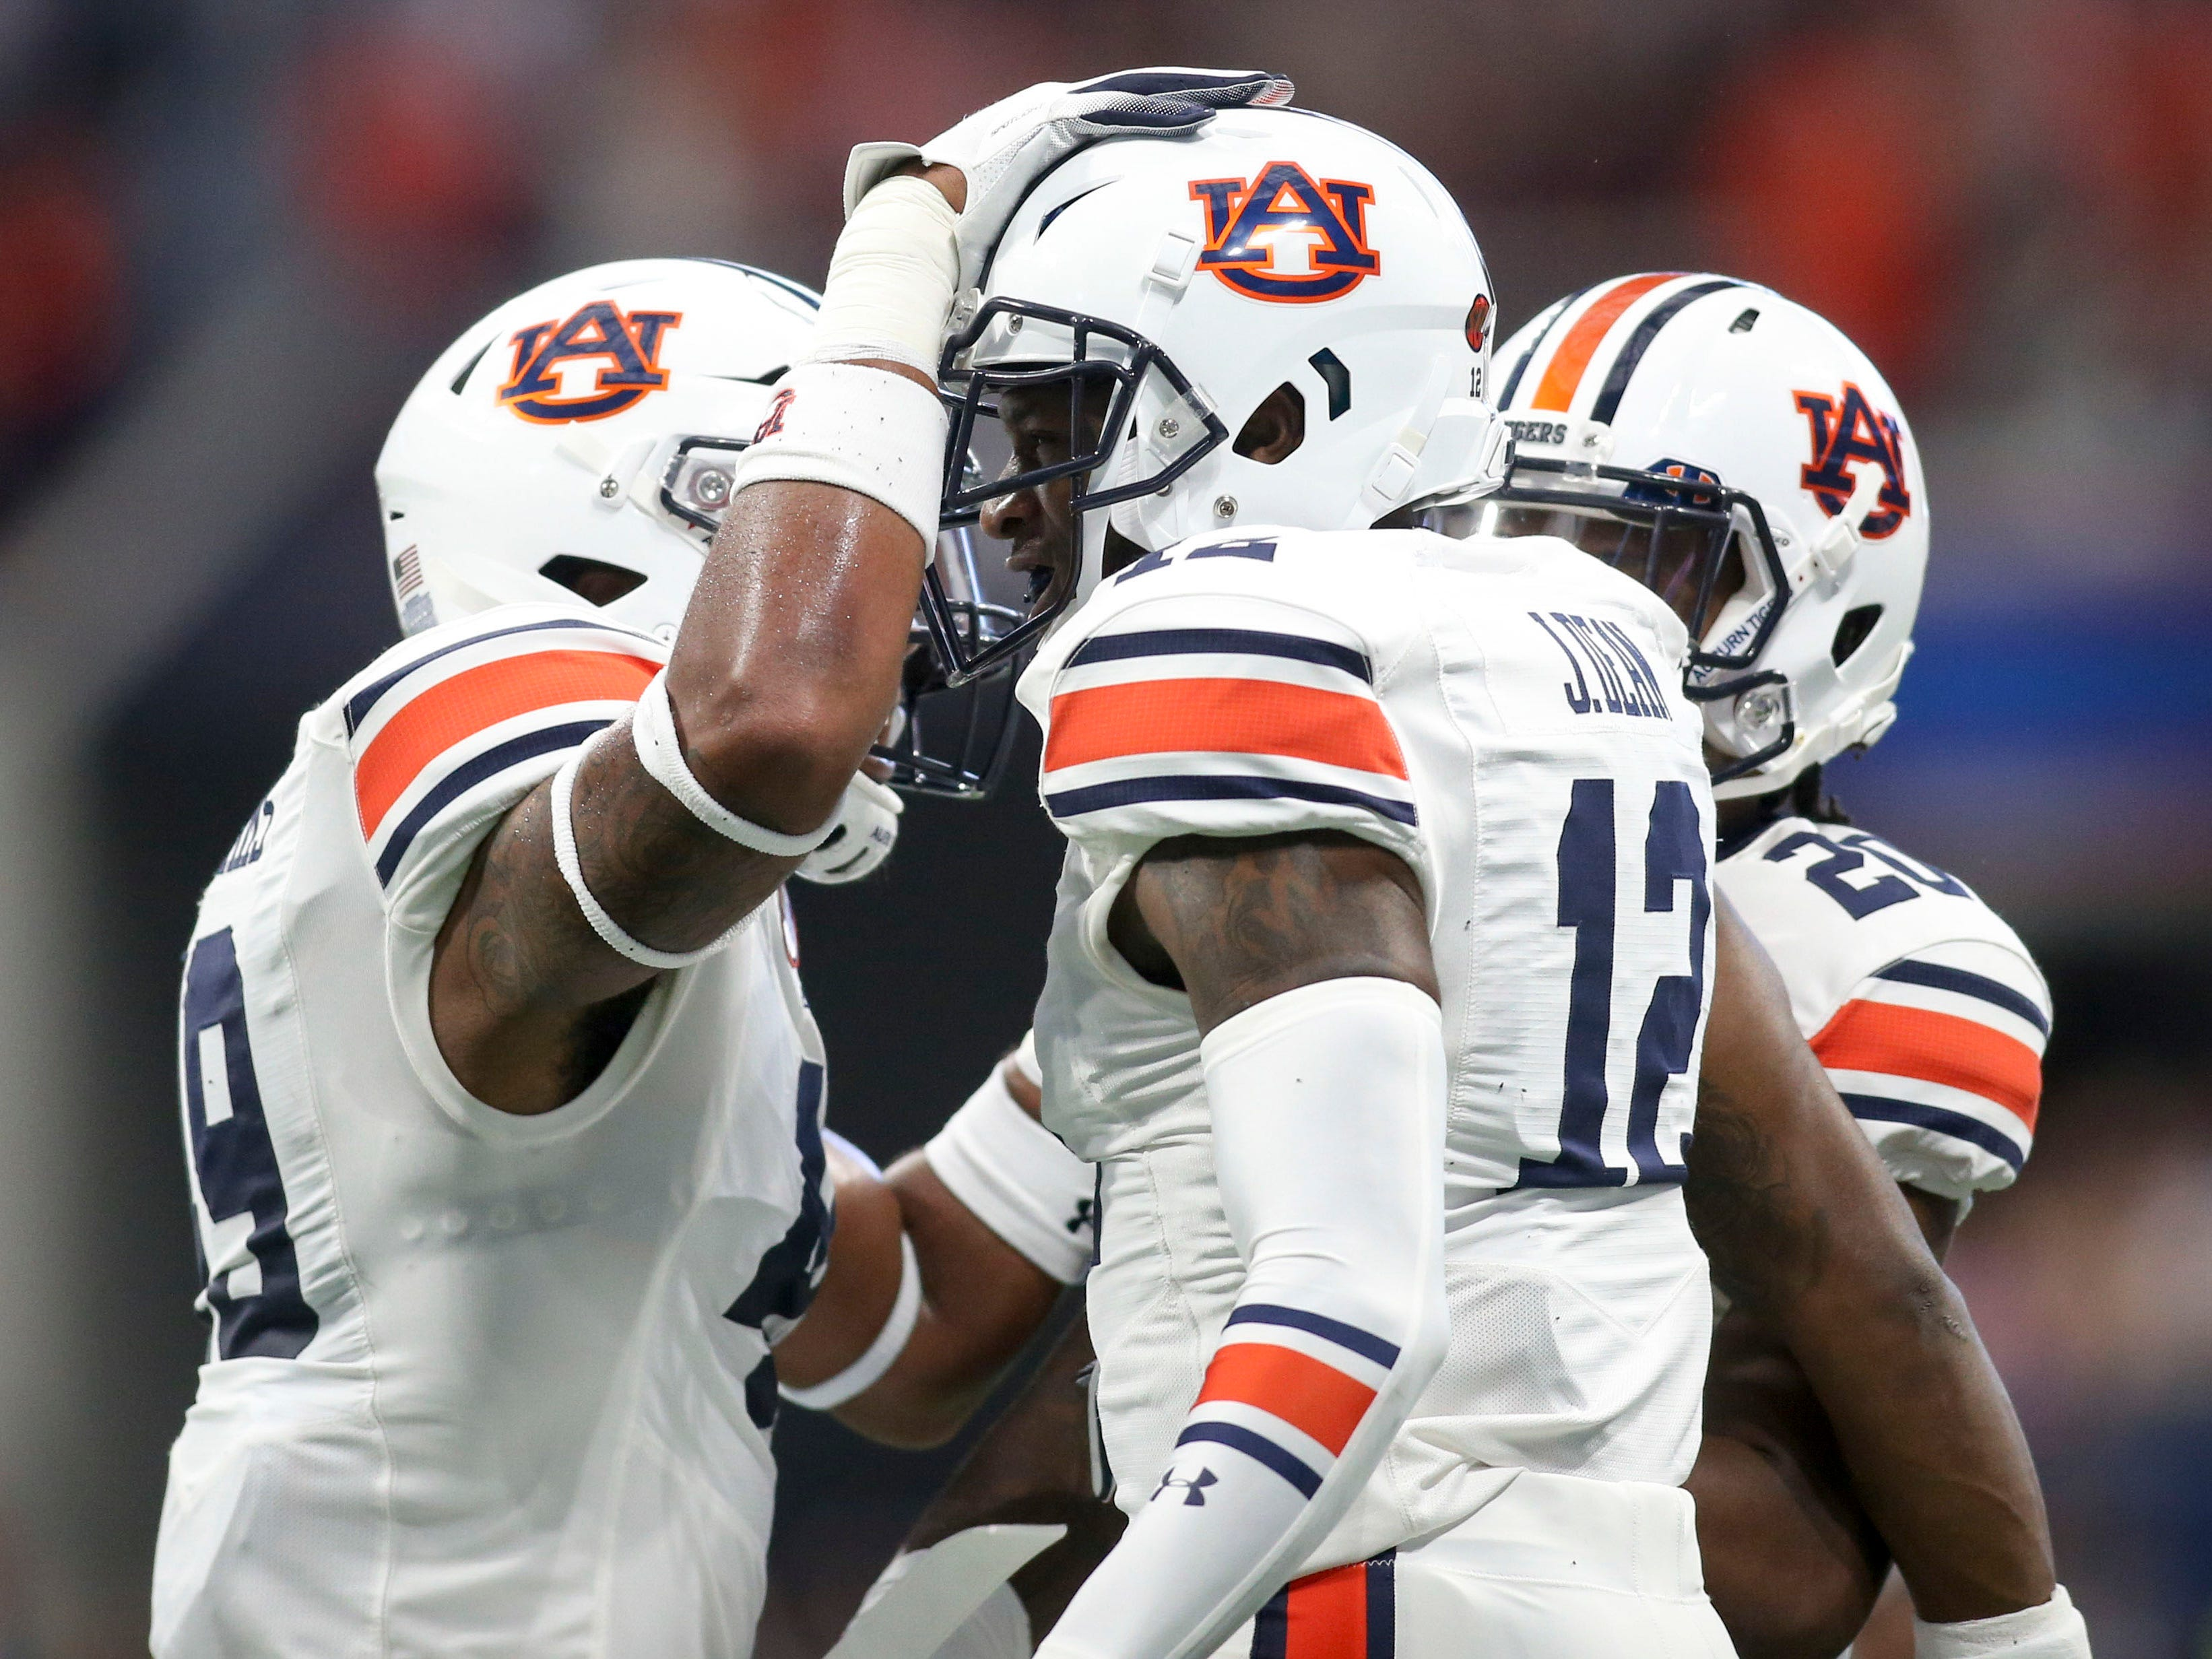 Auburn Tigers defensive back Jamel Dean (12) celebrates after an interception with linebacker Darrell Williams (49) and defensive back Jeremiah Dinson (20) against the Washington Huskies in the first quarter at Mercedes-Benz Stadium.